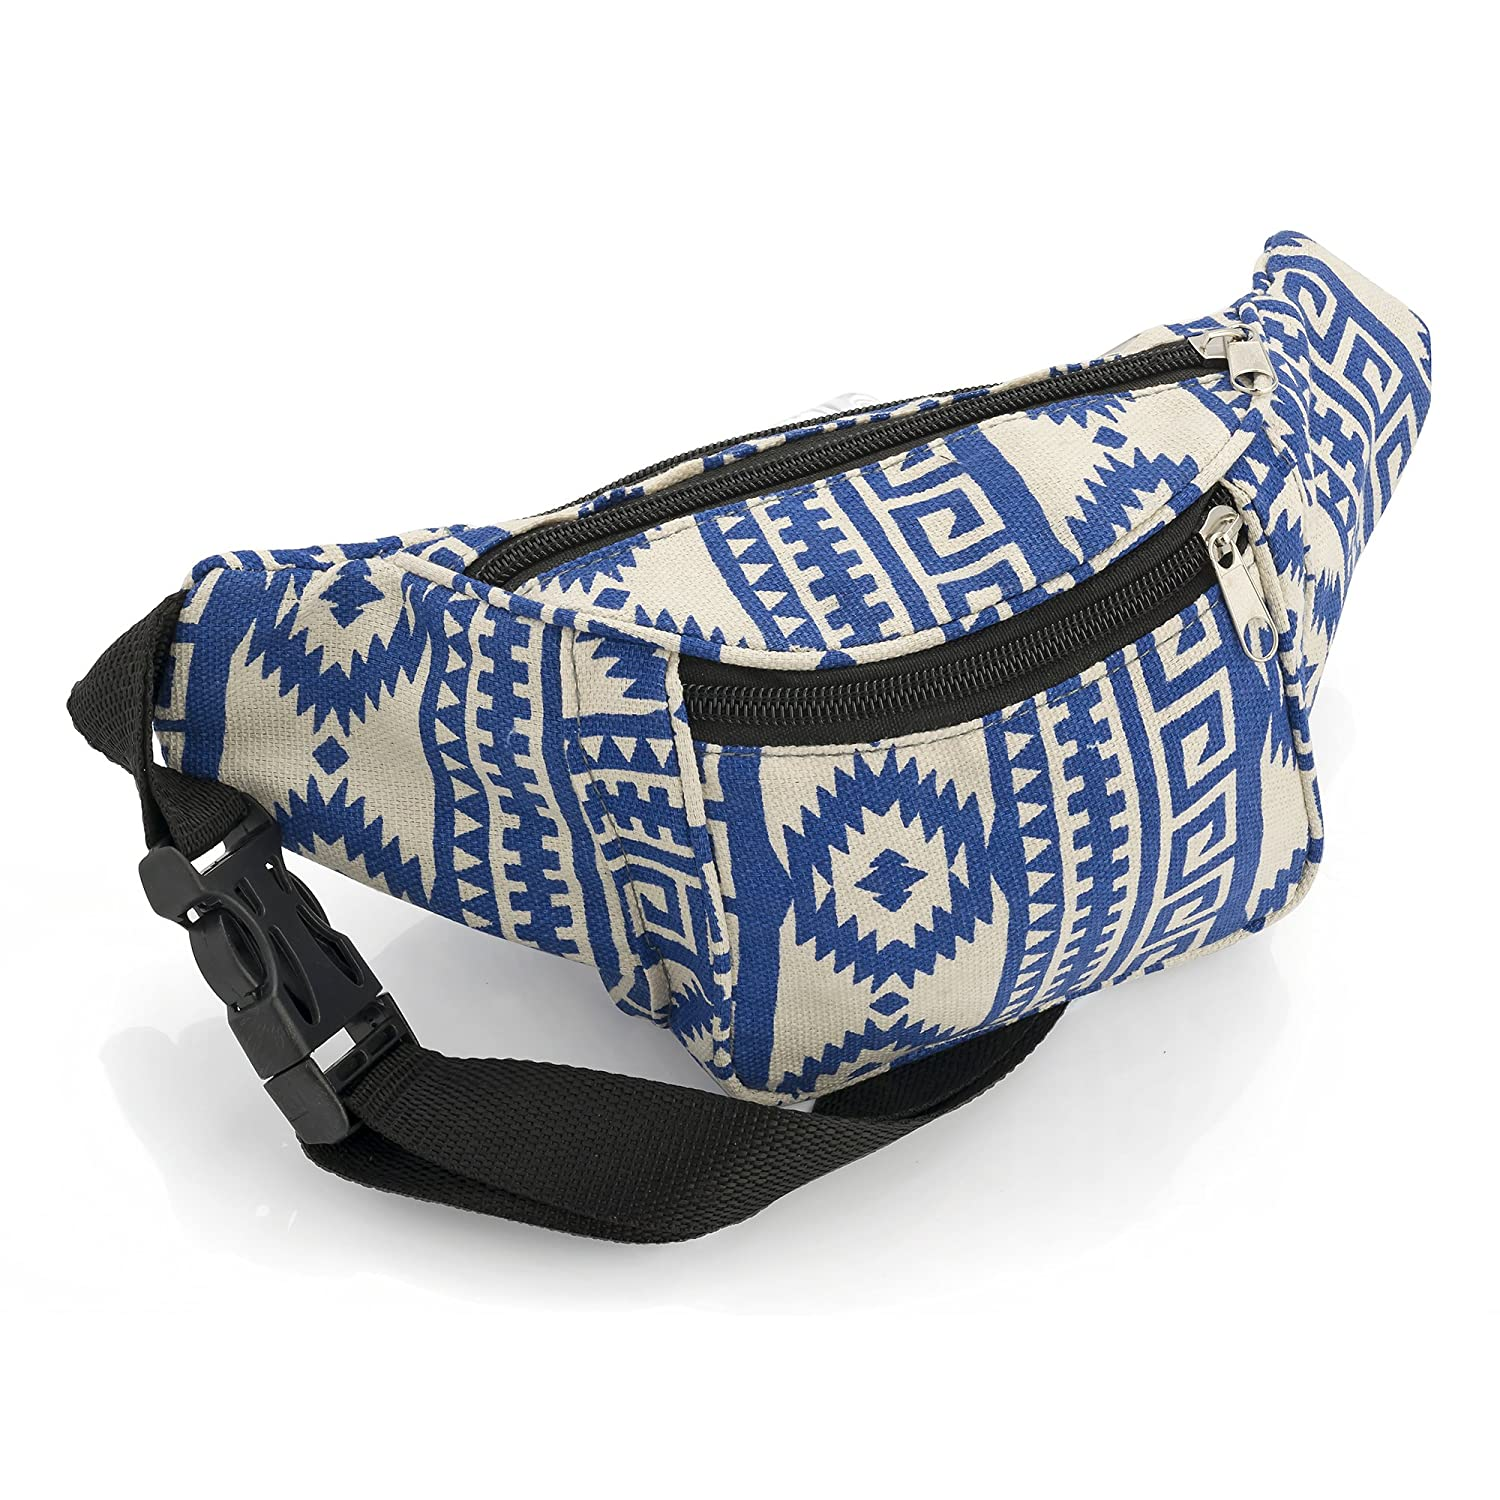 Blue and Beige Abstract Design Bum Bag Fanny Pack Festivals Holiday Wear BG30173